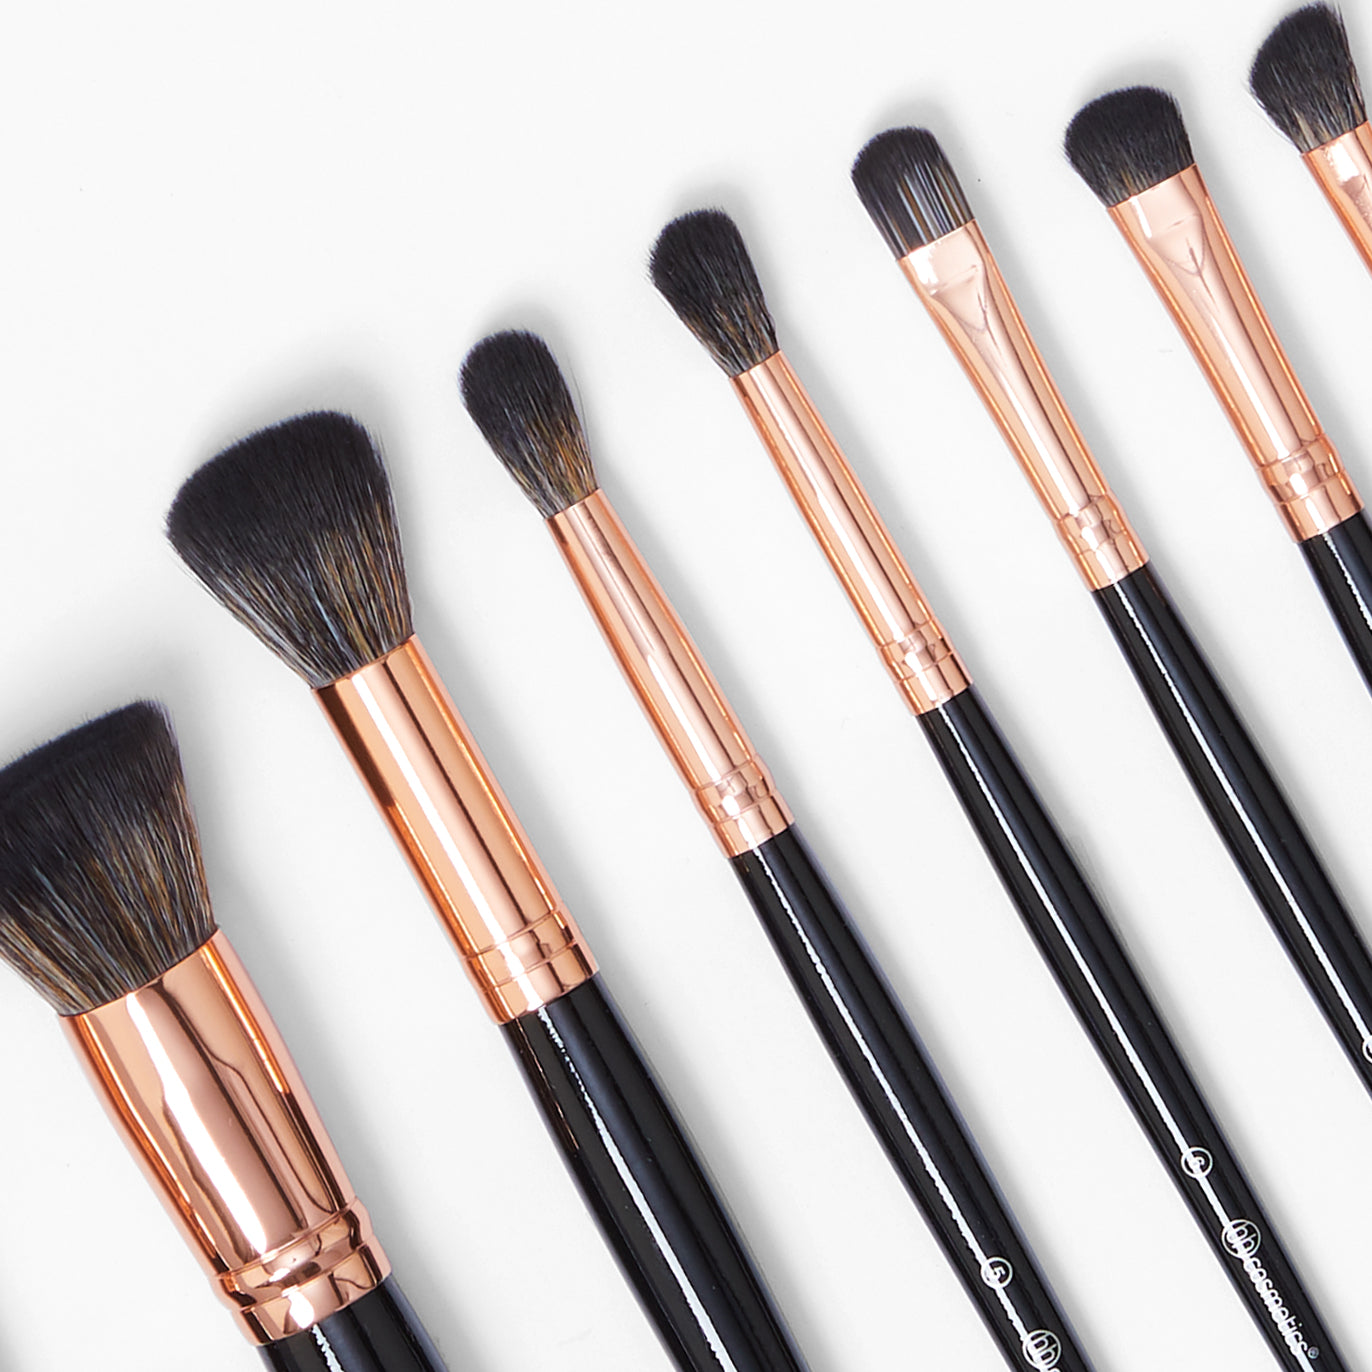 27d049d4d1b7 BH Signature Rose Gold - 13 Piece Brush Set Online - BH Cosmetics LLC